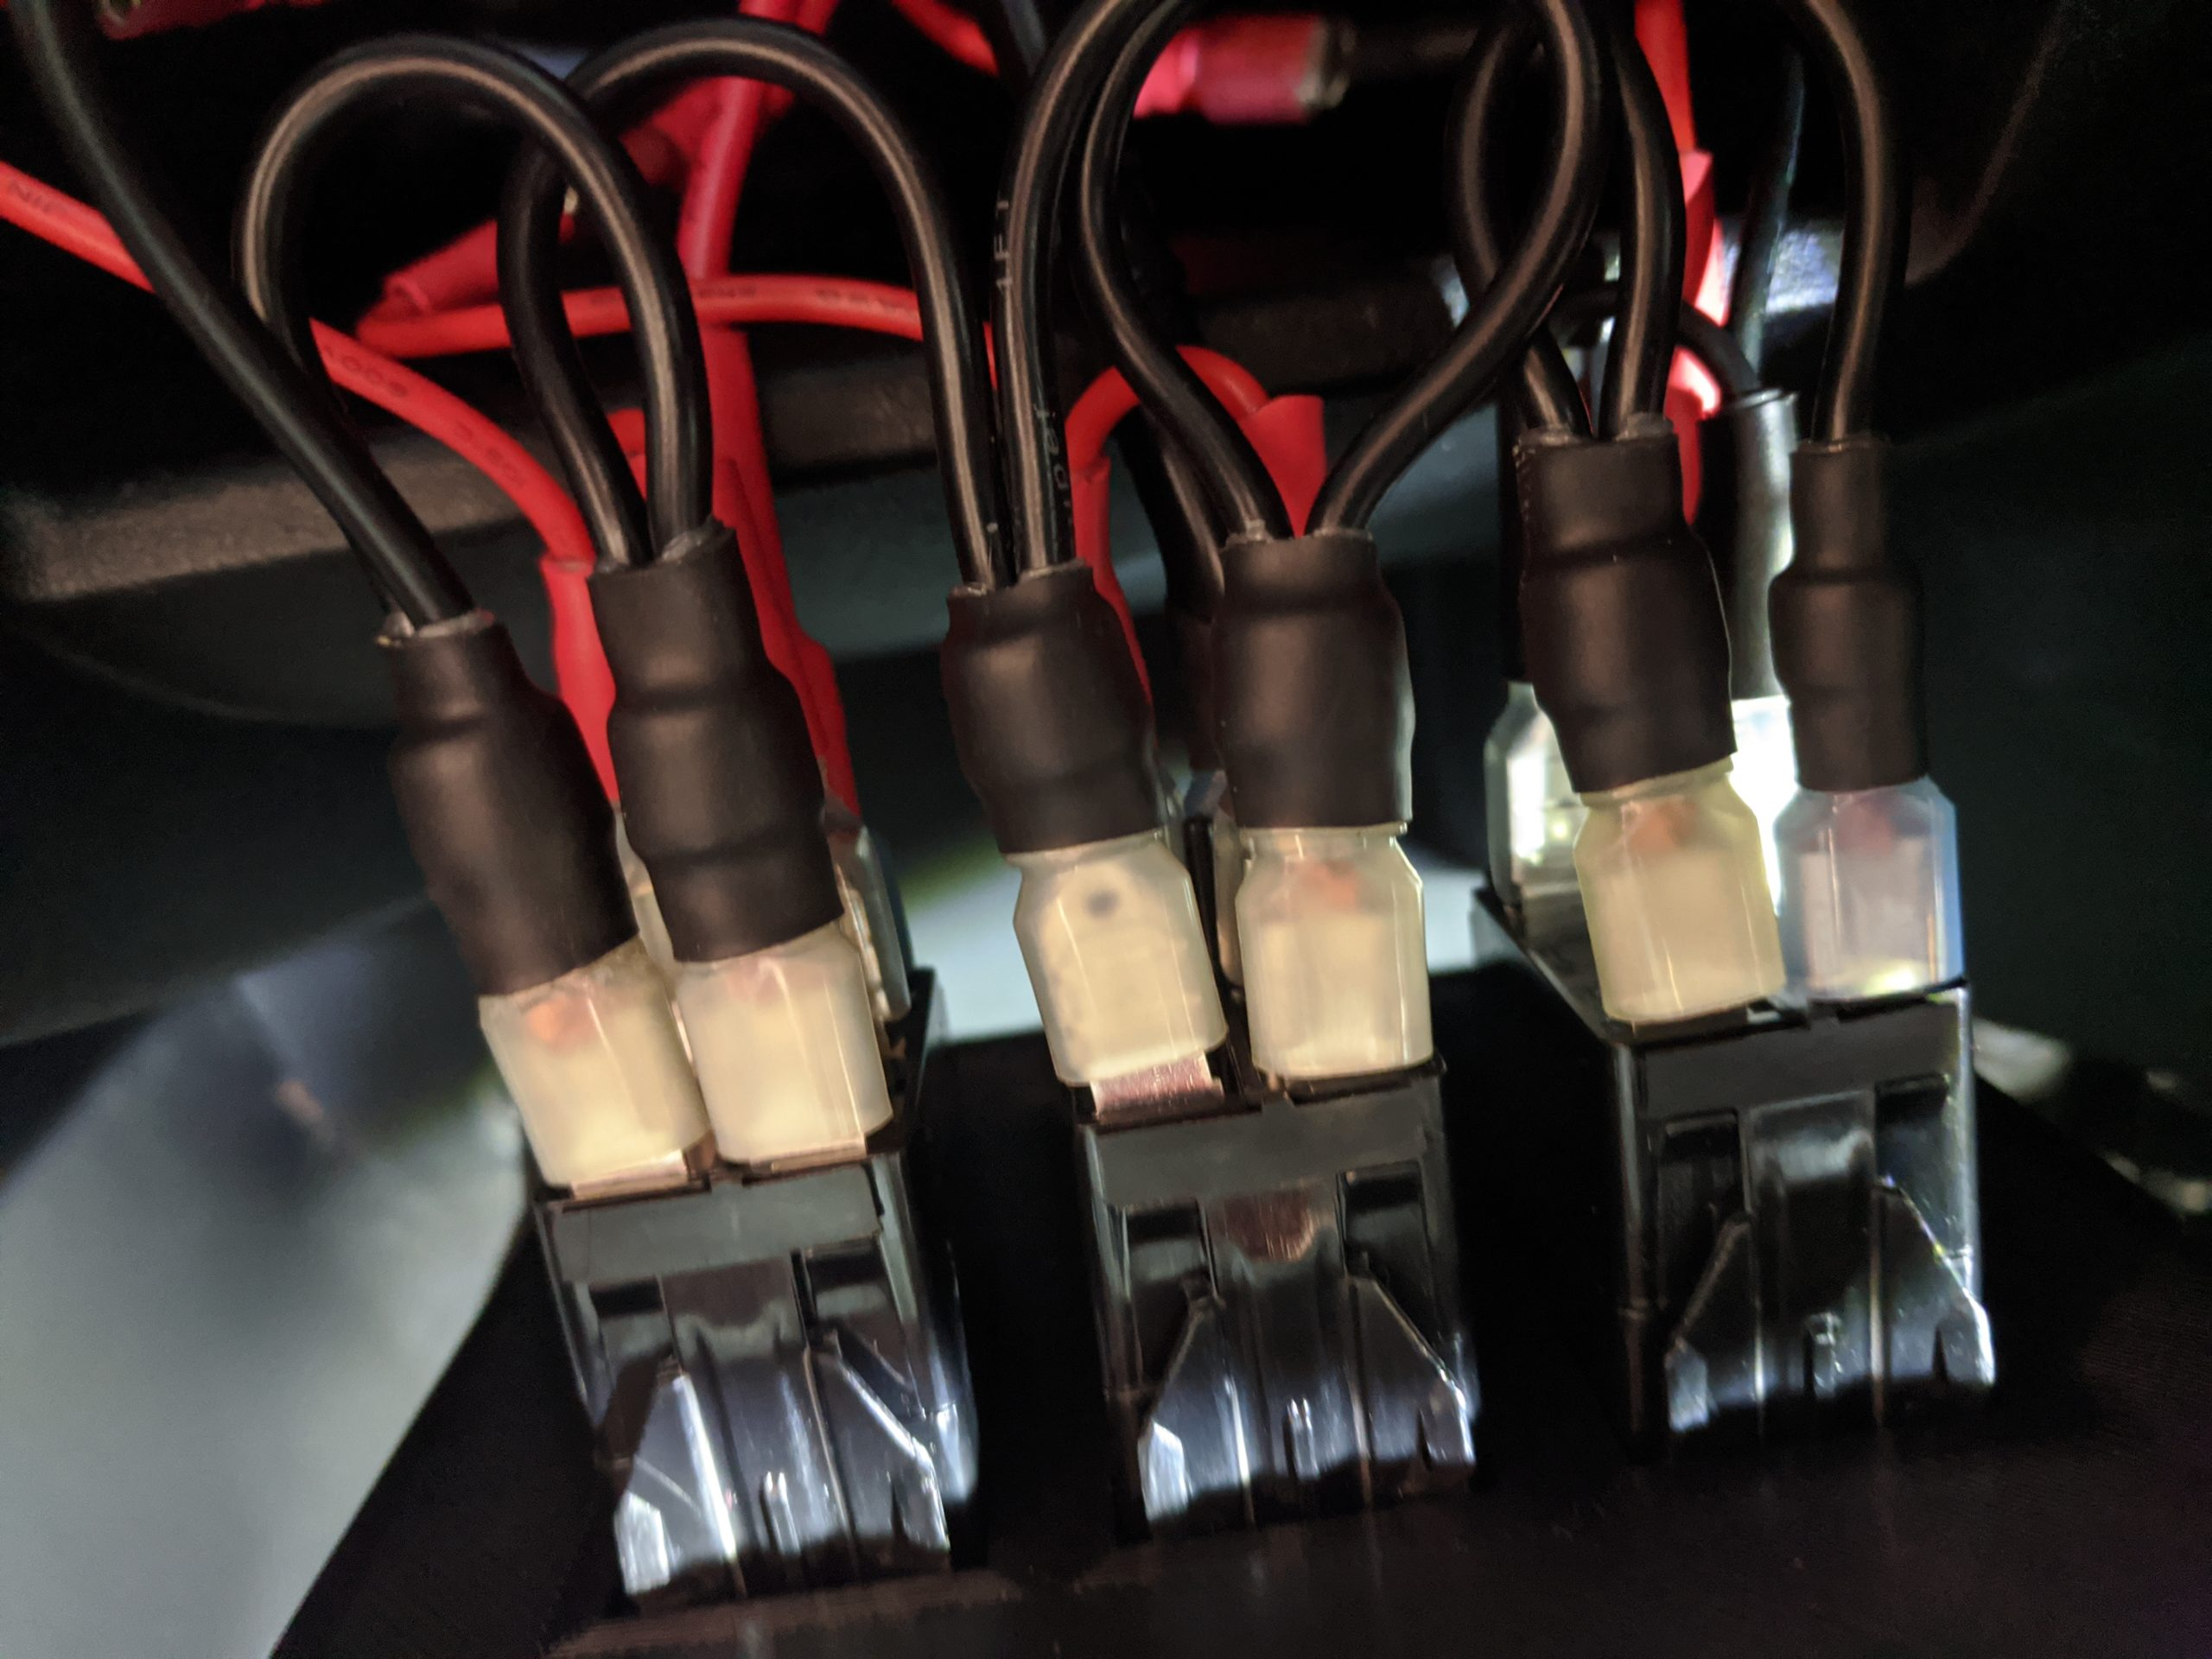 Grounds and power all hooked up for testing the LED's